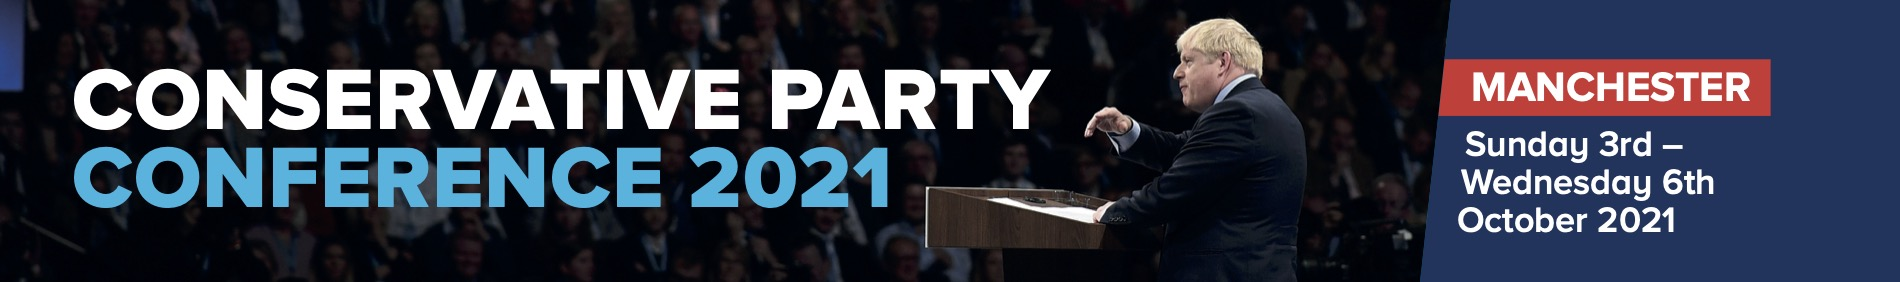 Conservative Party Conference 2021 – join us in Manchester!